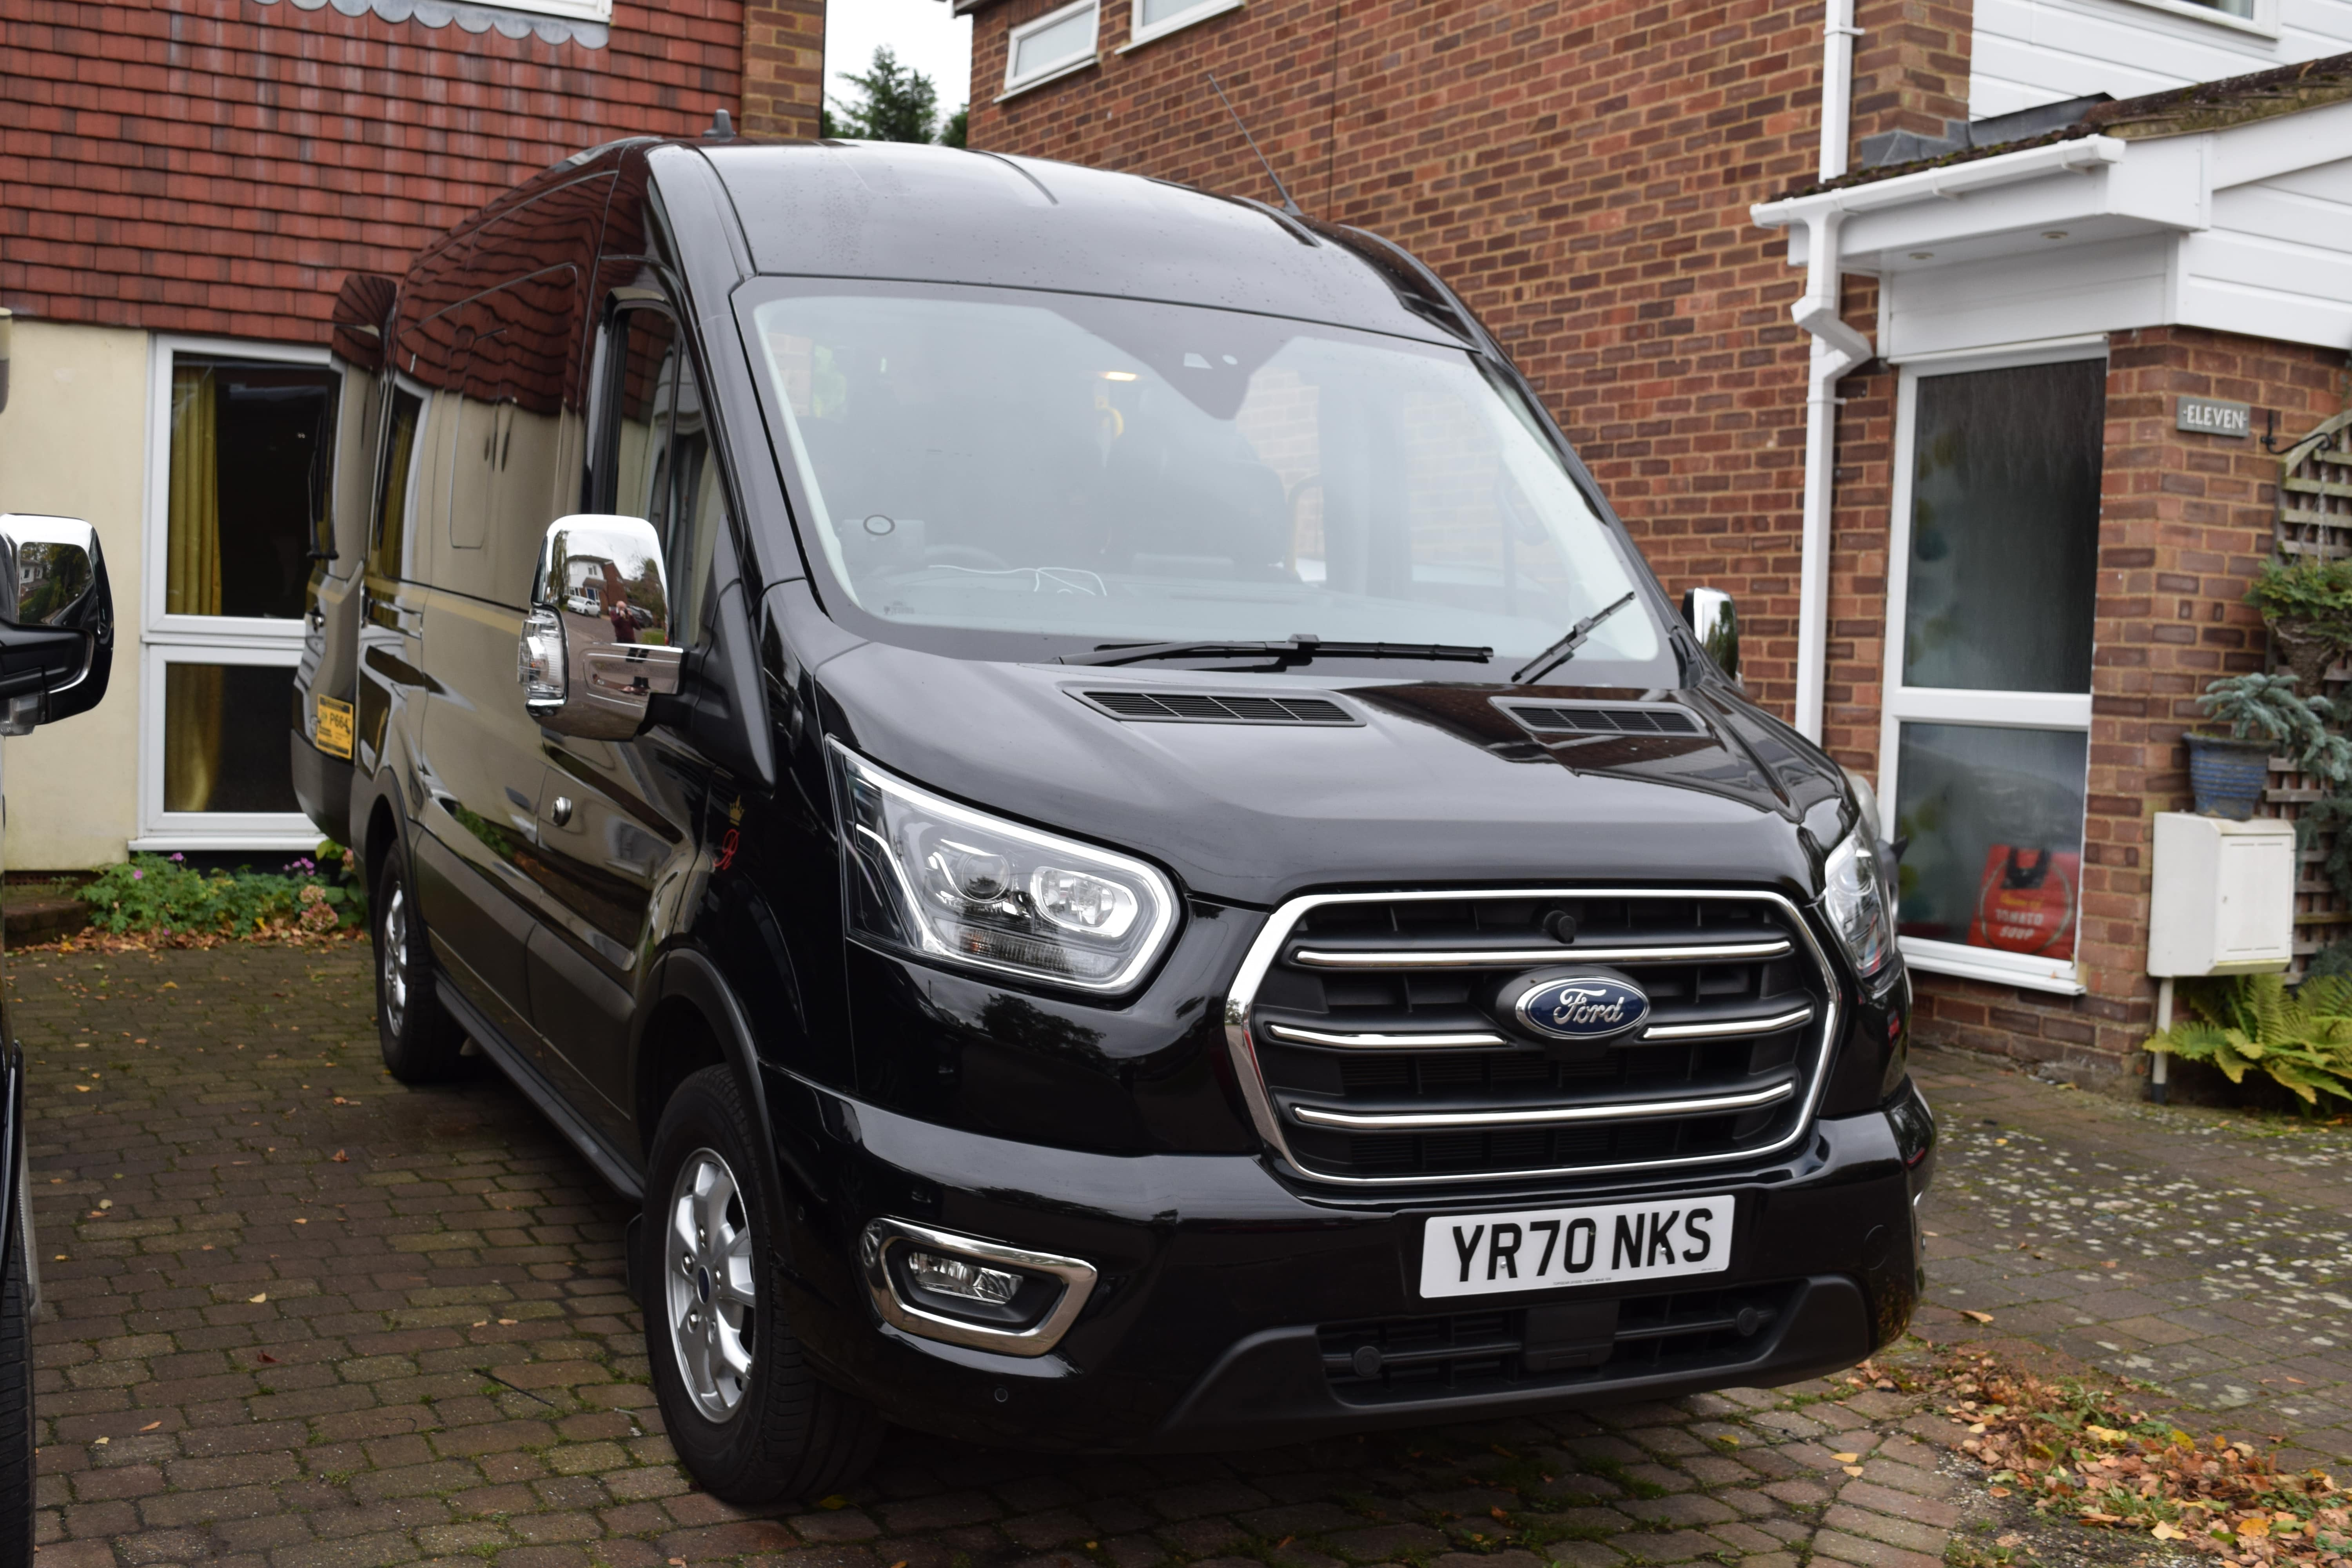 Outside view of the Ford Transit